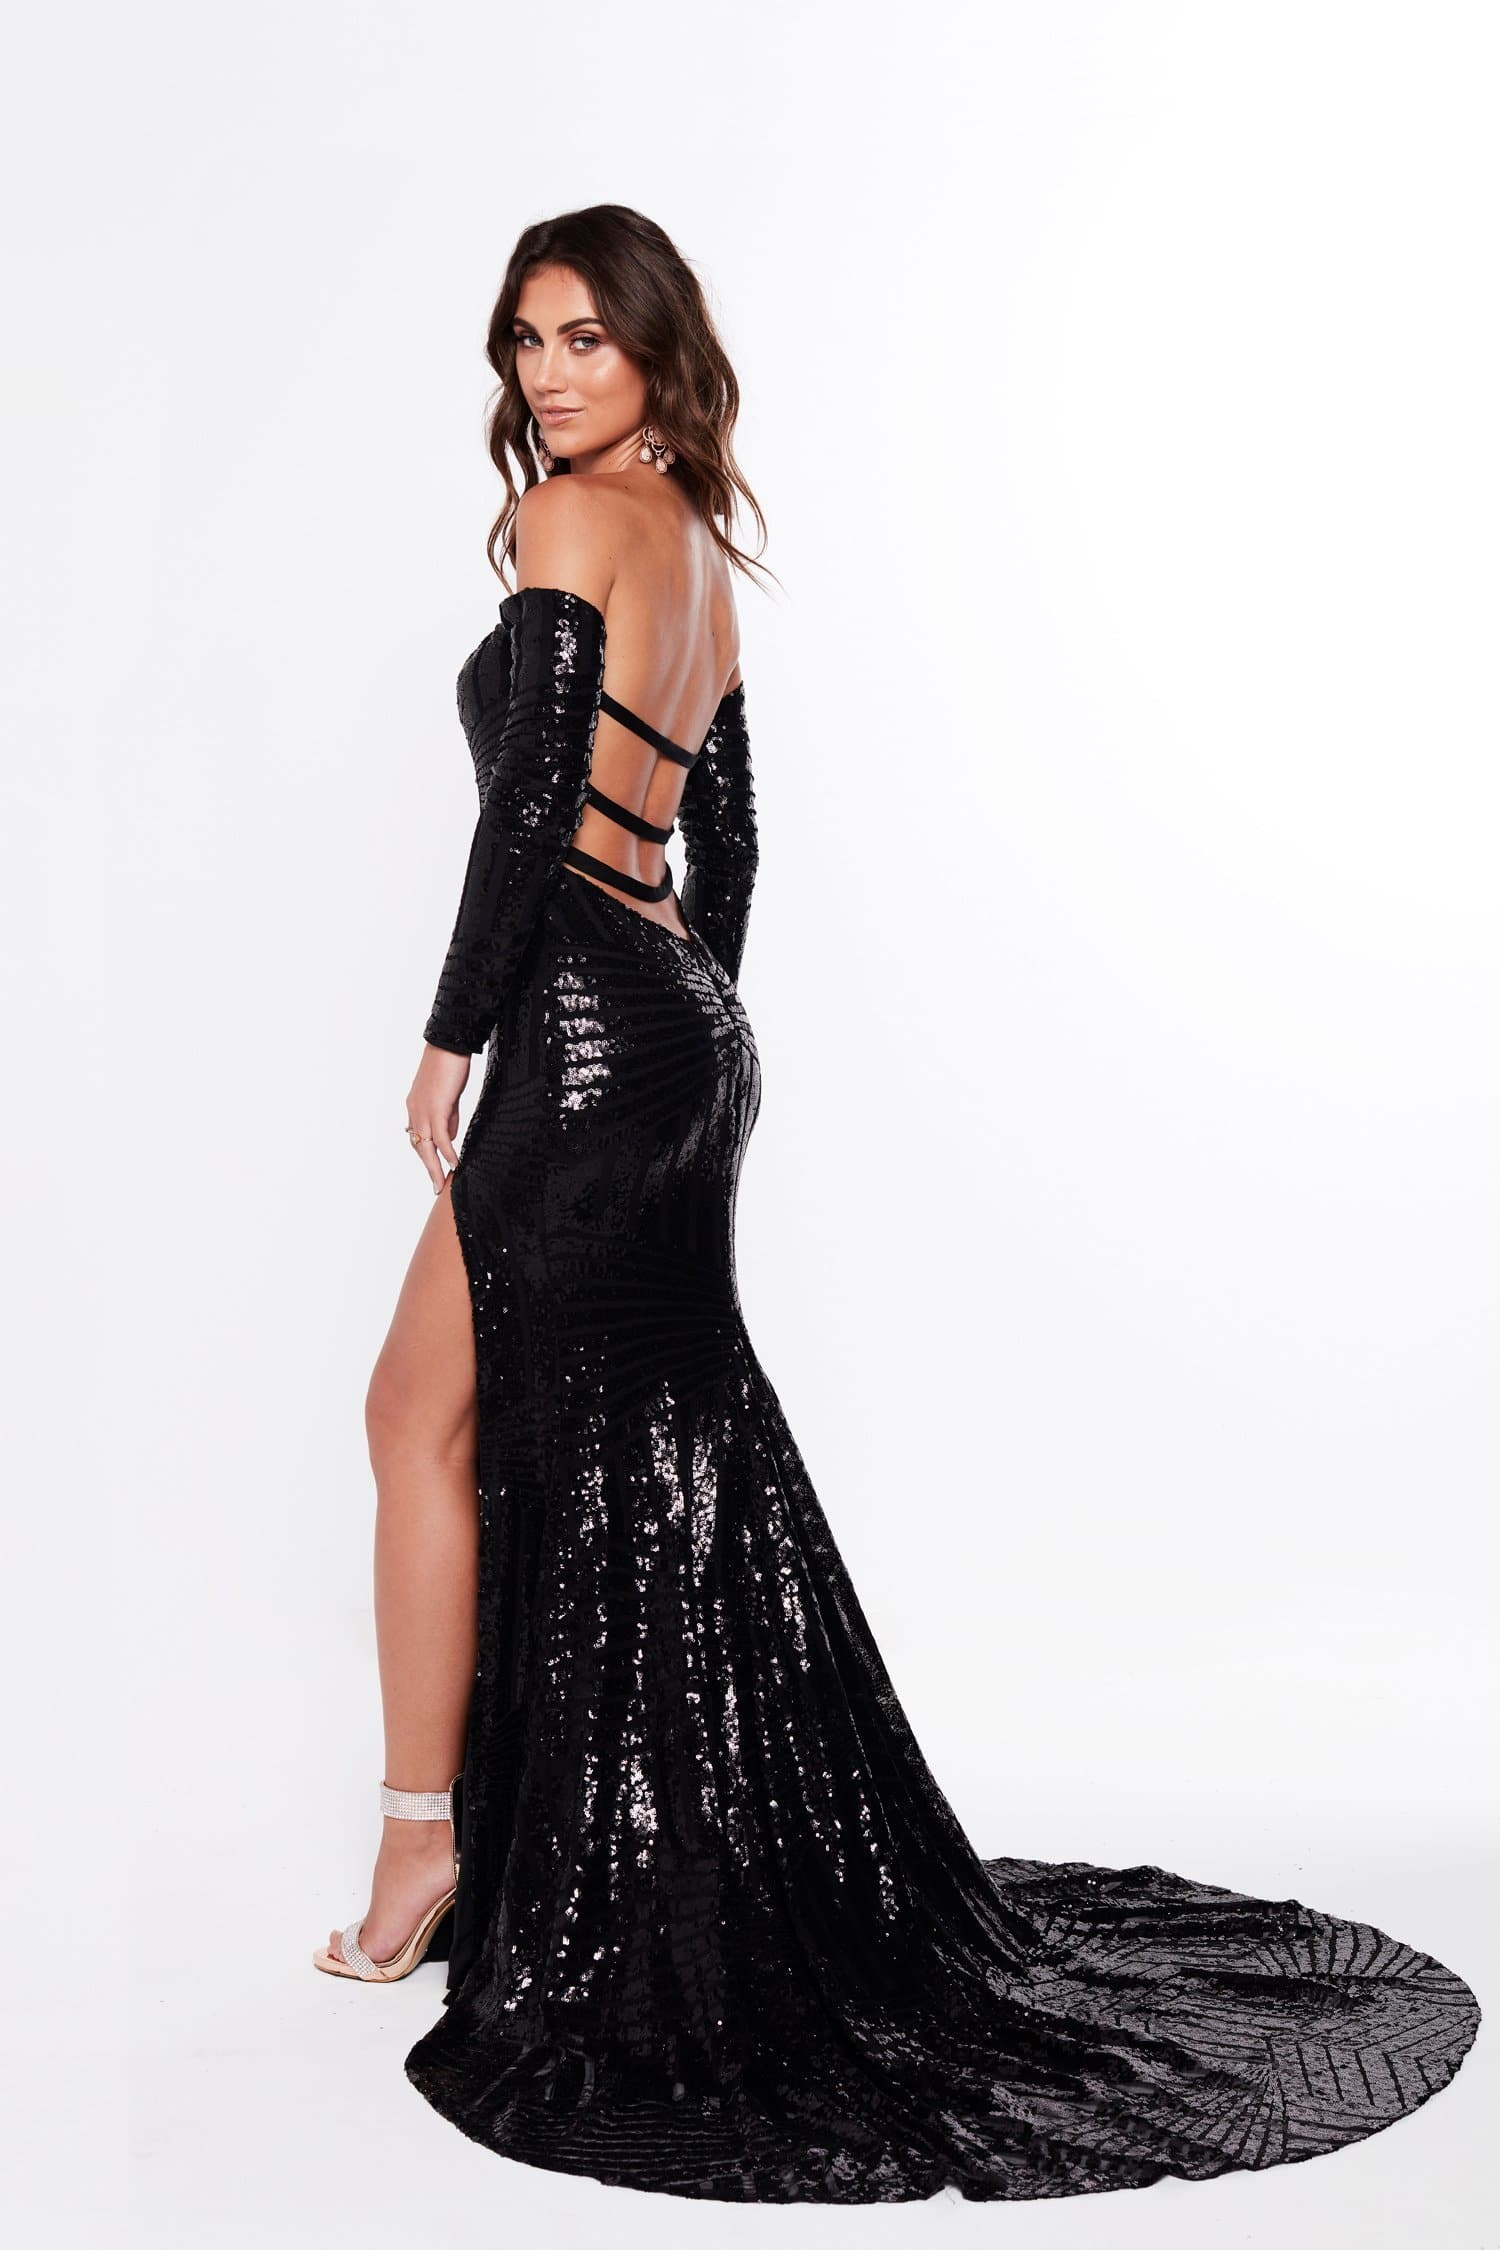 02526d67d72f A N Regina - Black Sequin Gown with Off-Shoulder Long Sleeves – A N ...